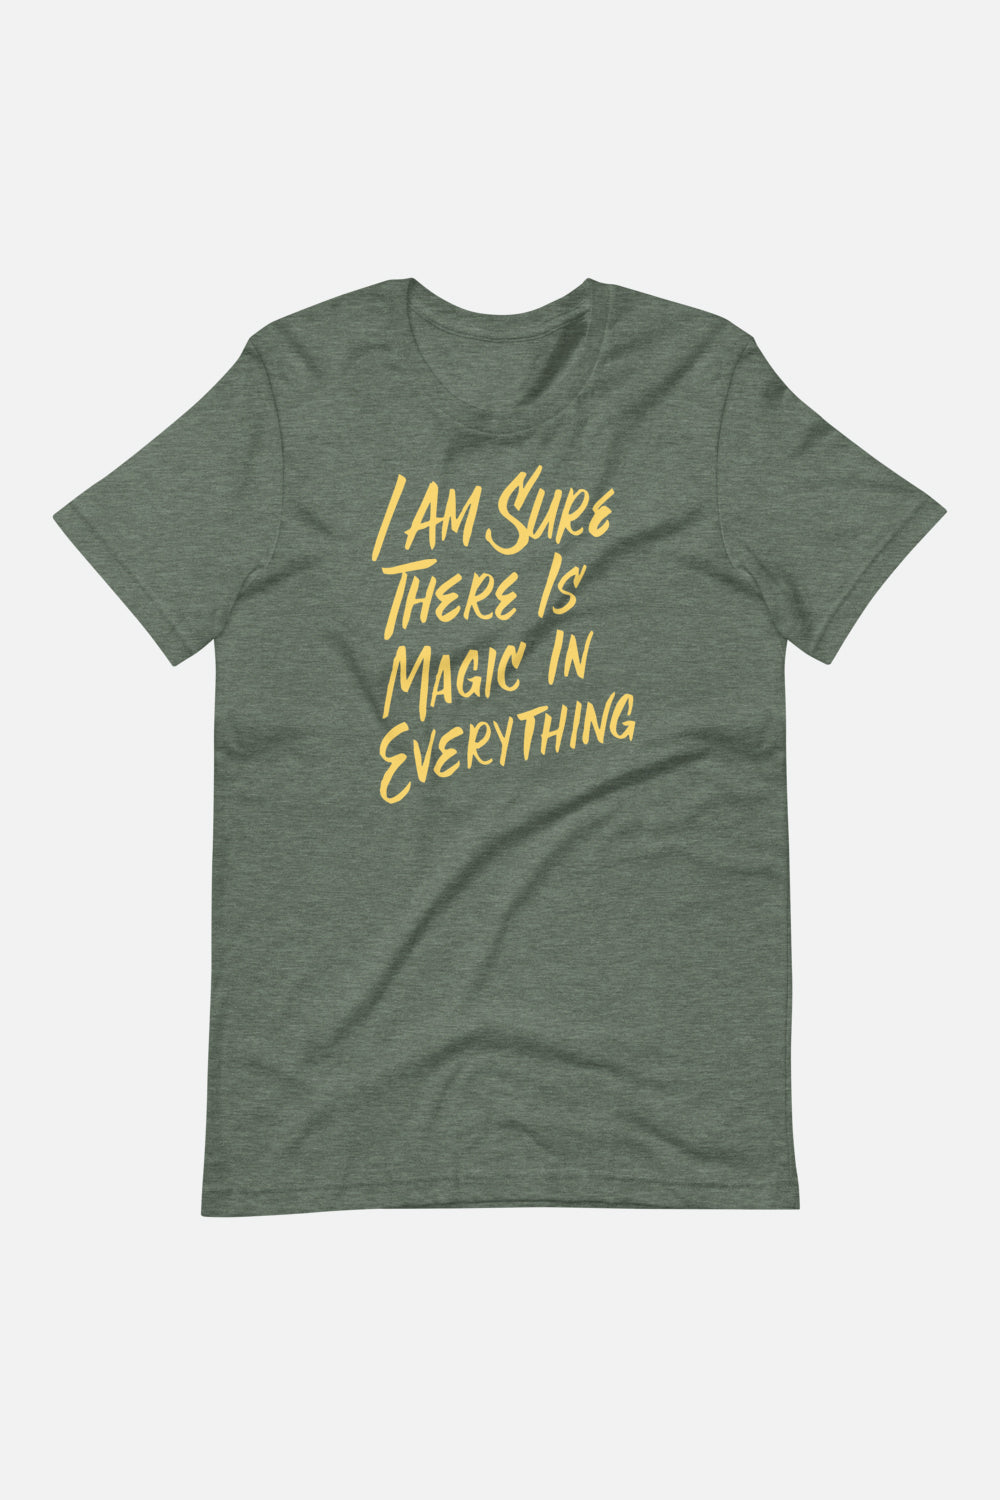 I Am Sure There is Magic in Everything Unisex T-Shirt | The Secret Garden